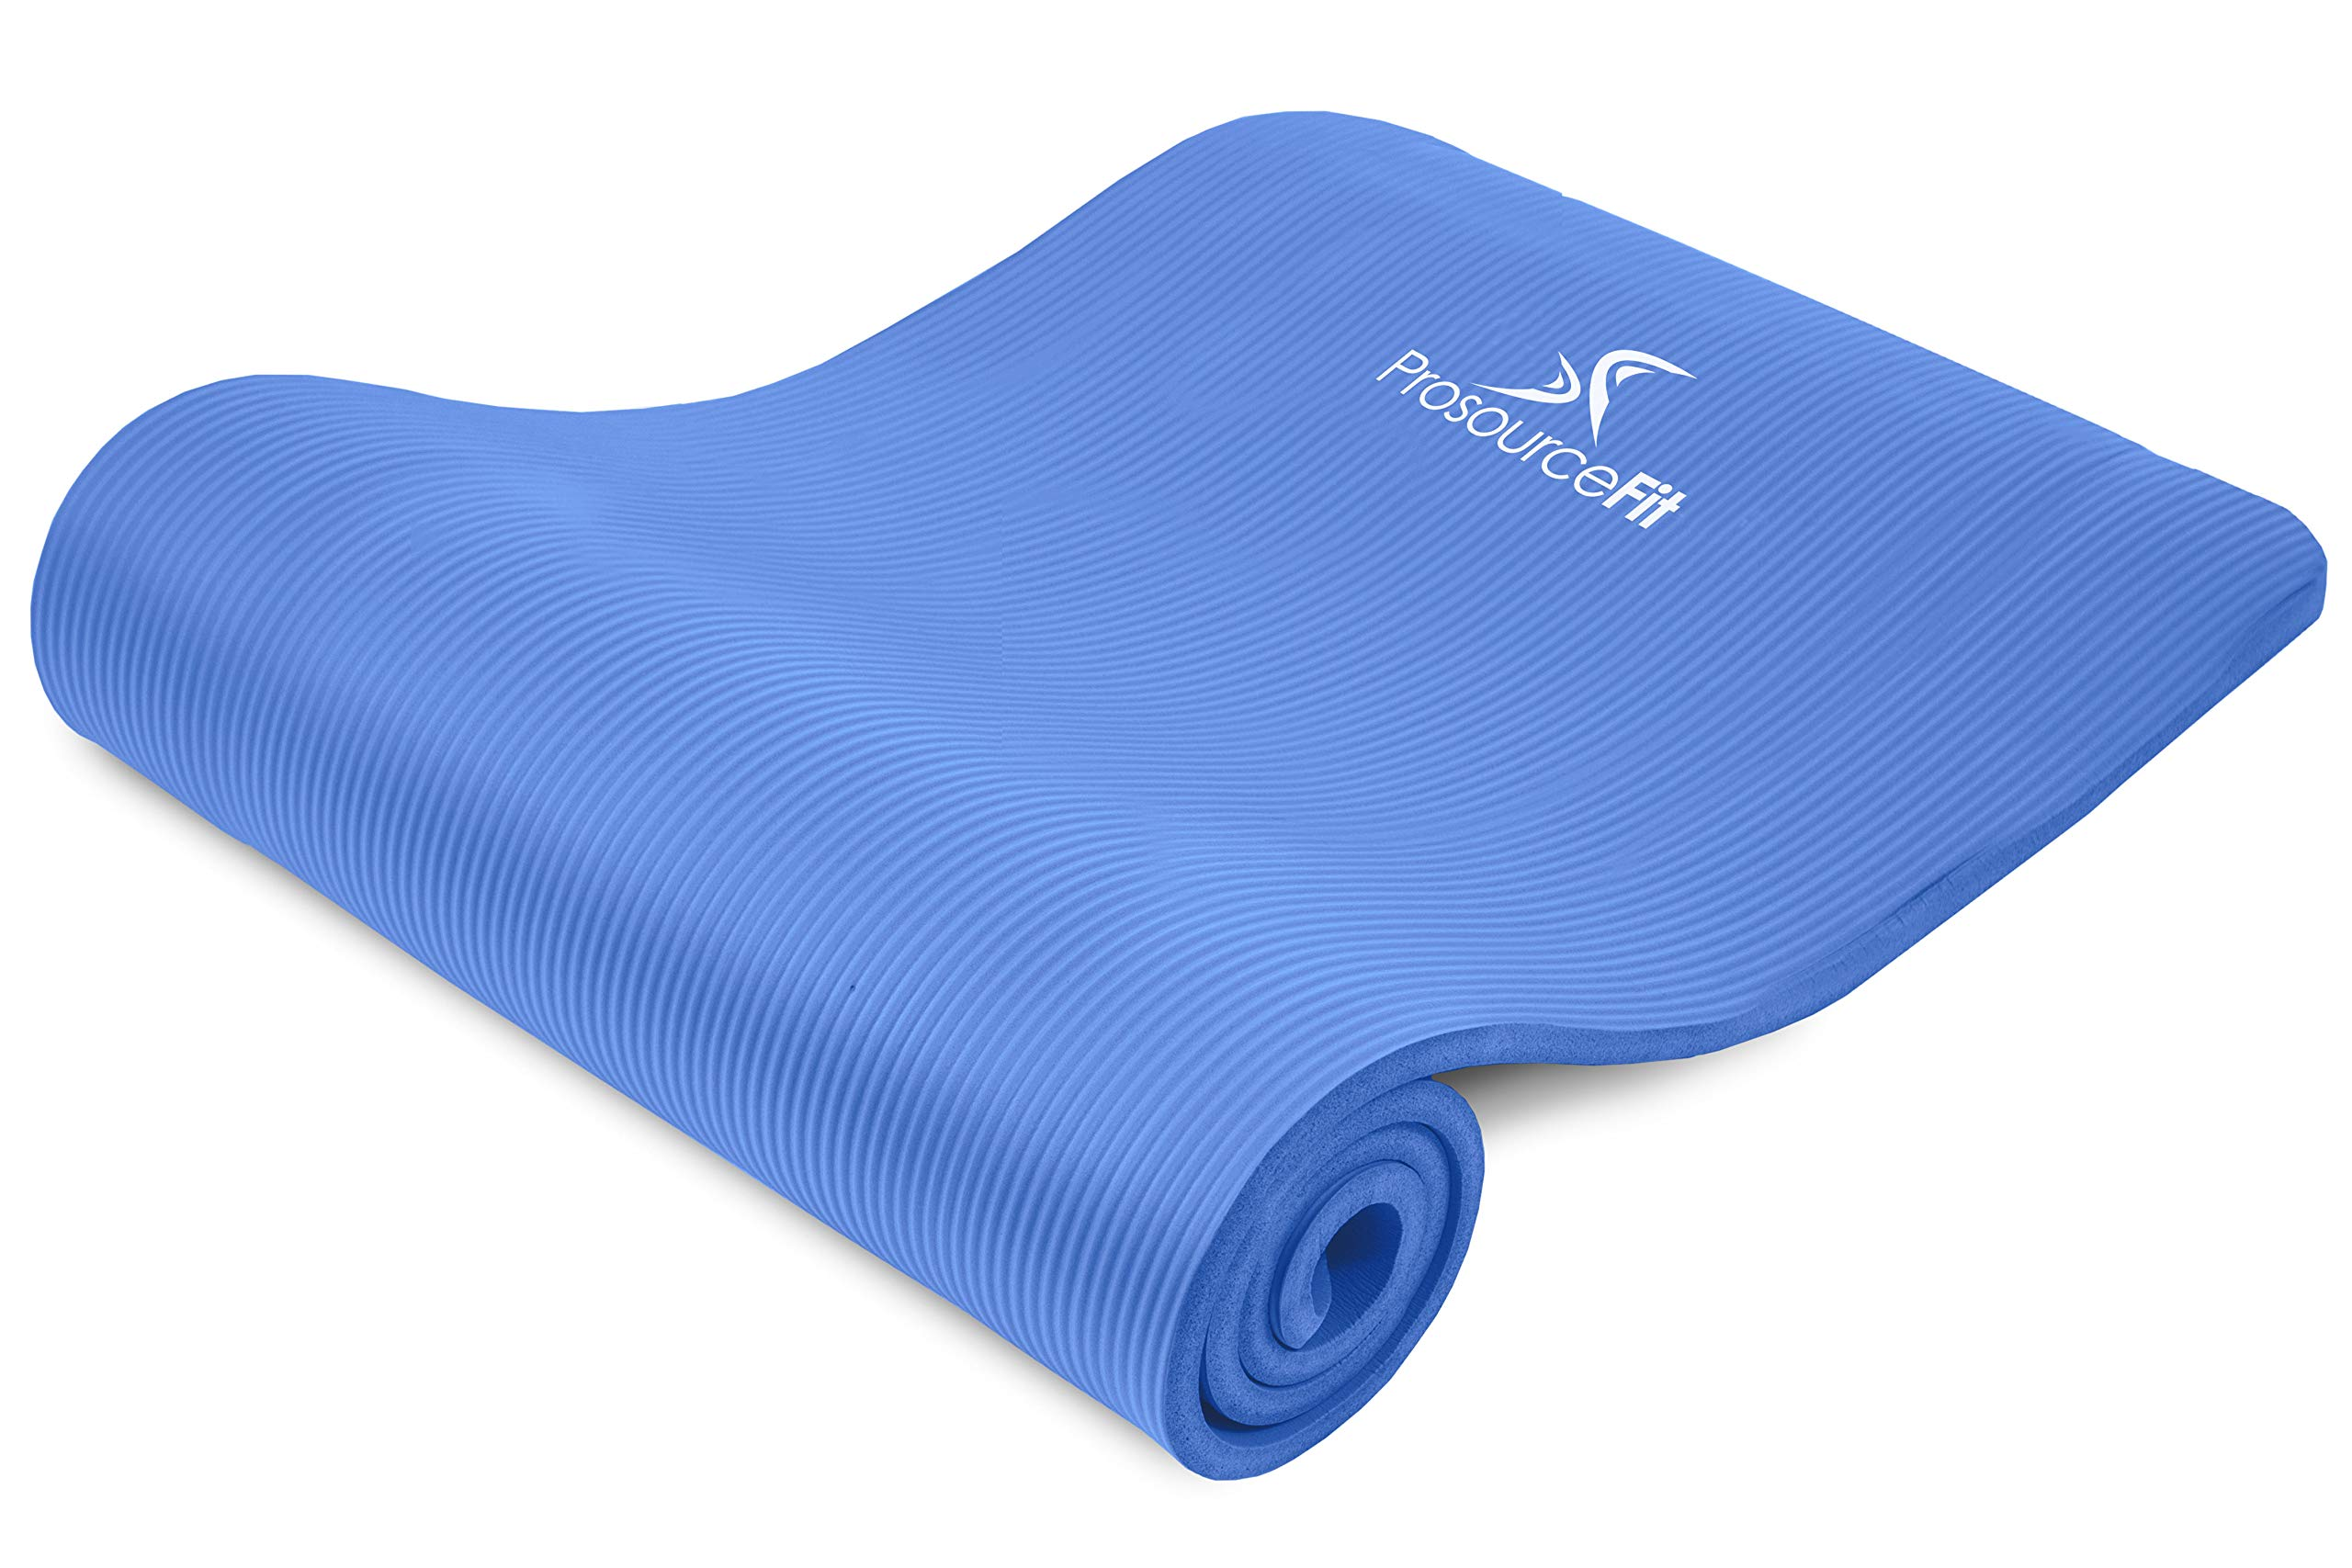 ProsourceFit Extra Thick Yoga and Pilates Mat ½'' (13mm), 71-inch Long High Density Exercise Mat with Comfort Foam and Carrying Strap, Blue